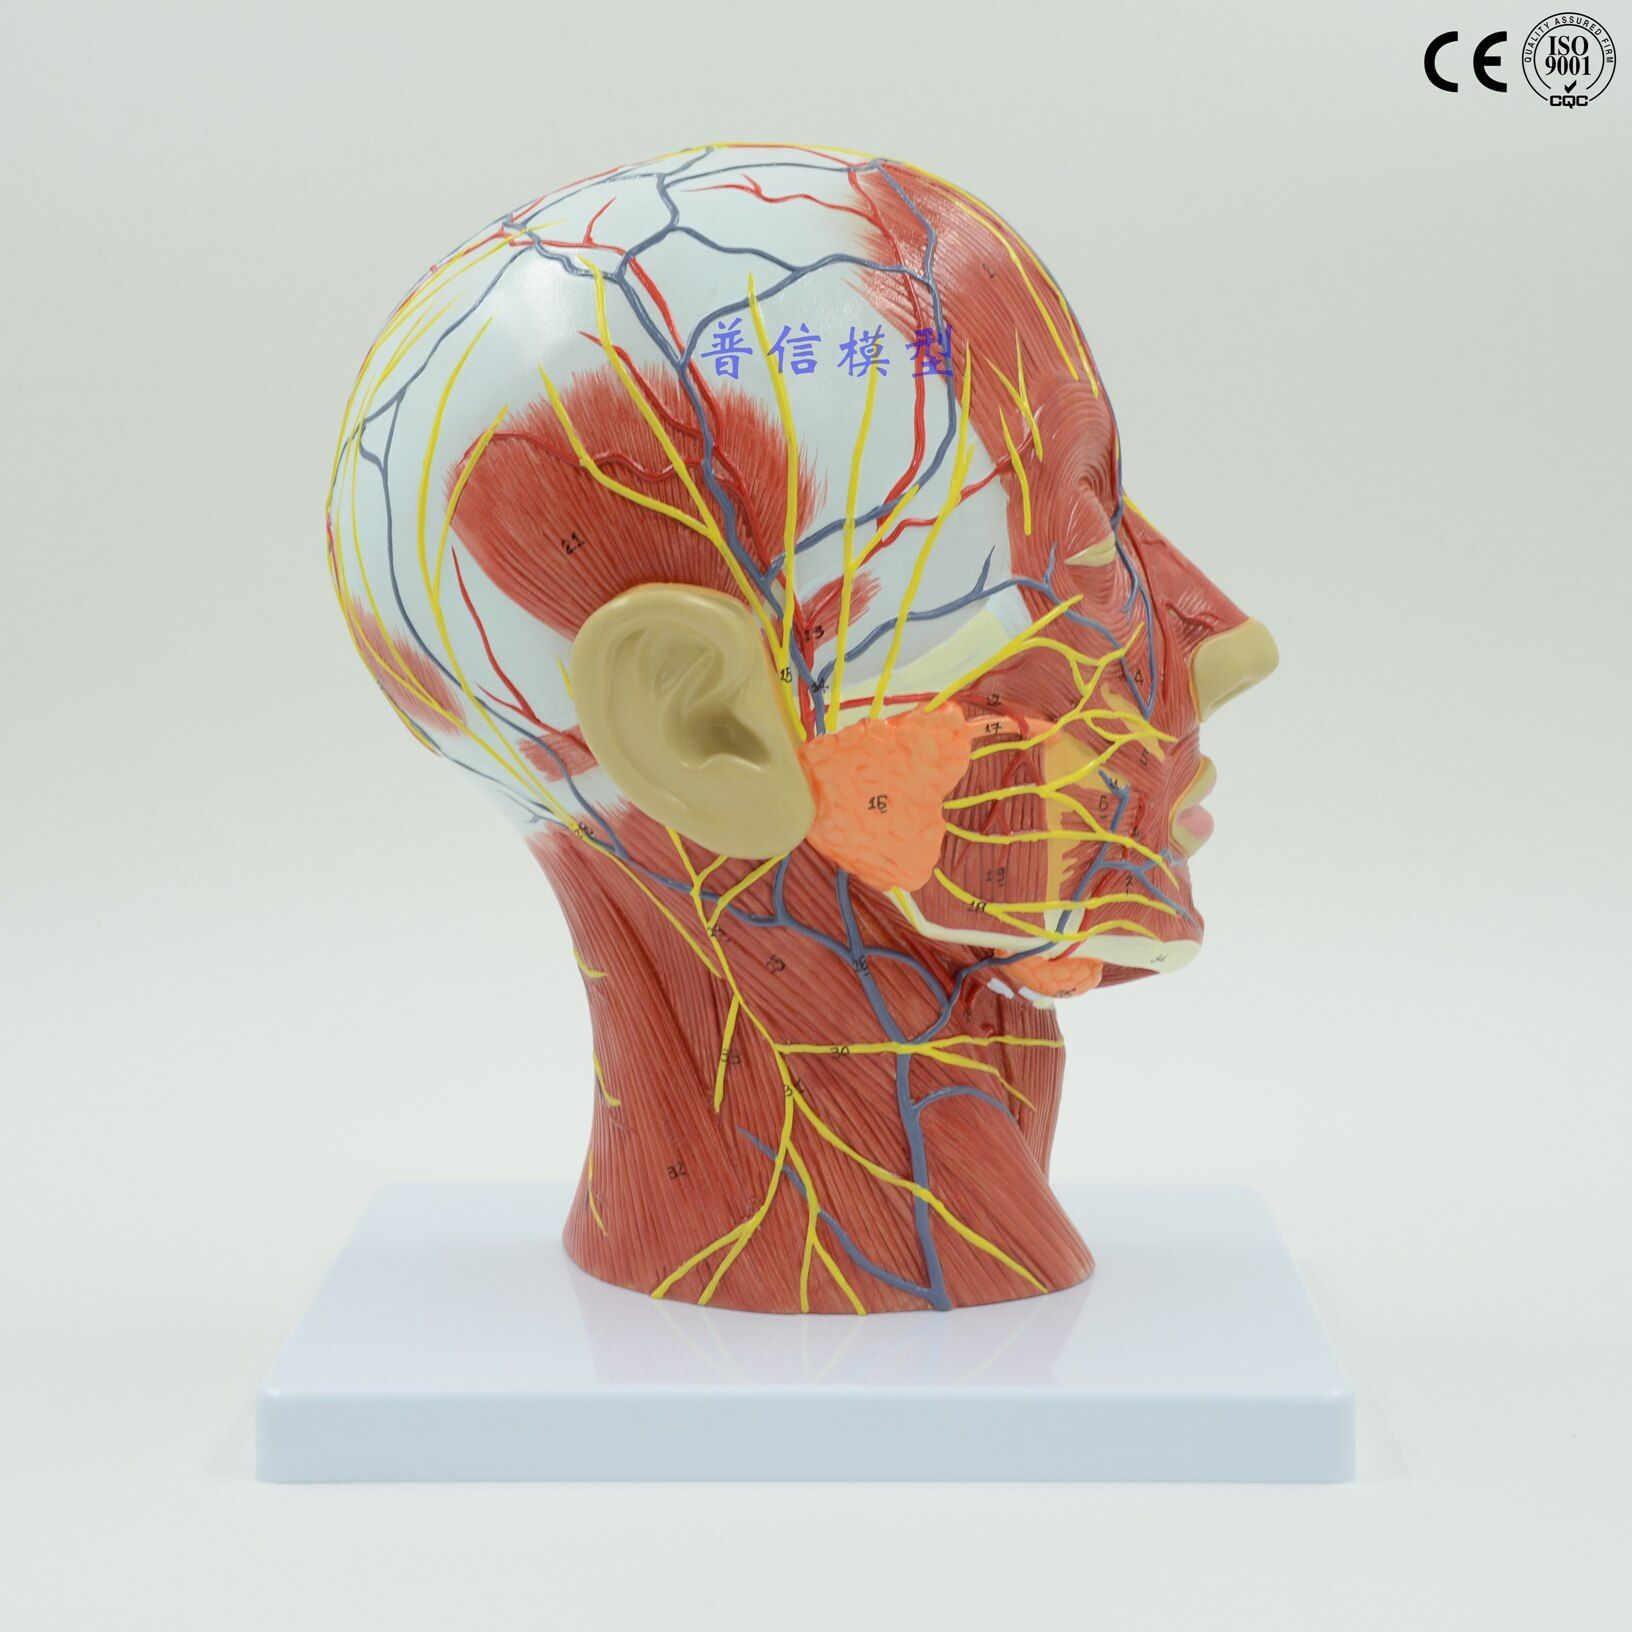 Medical Head Facial Anatomy Model of Brain Vascular Nerve Model of Facial Features Medical Science Educational Supplies